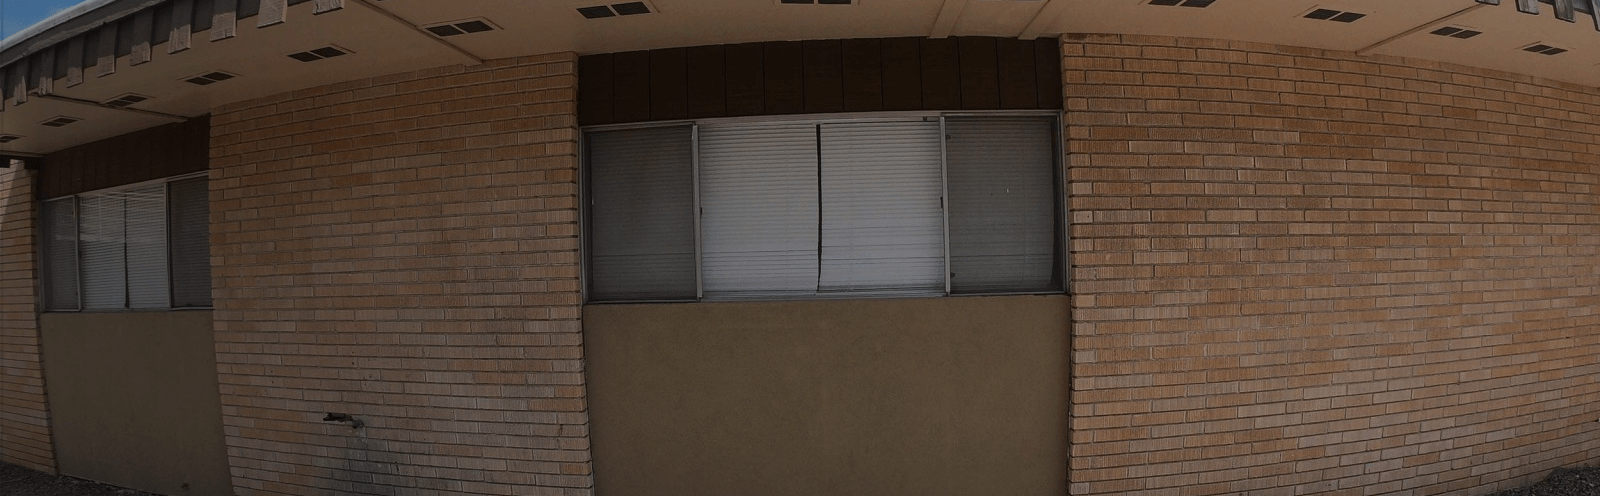 Stucco and Siding Contractor Serving Phoenix and All Arizona